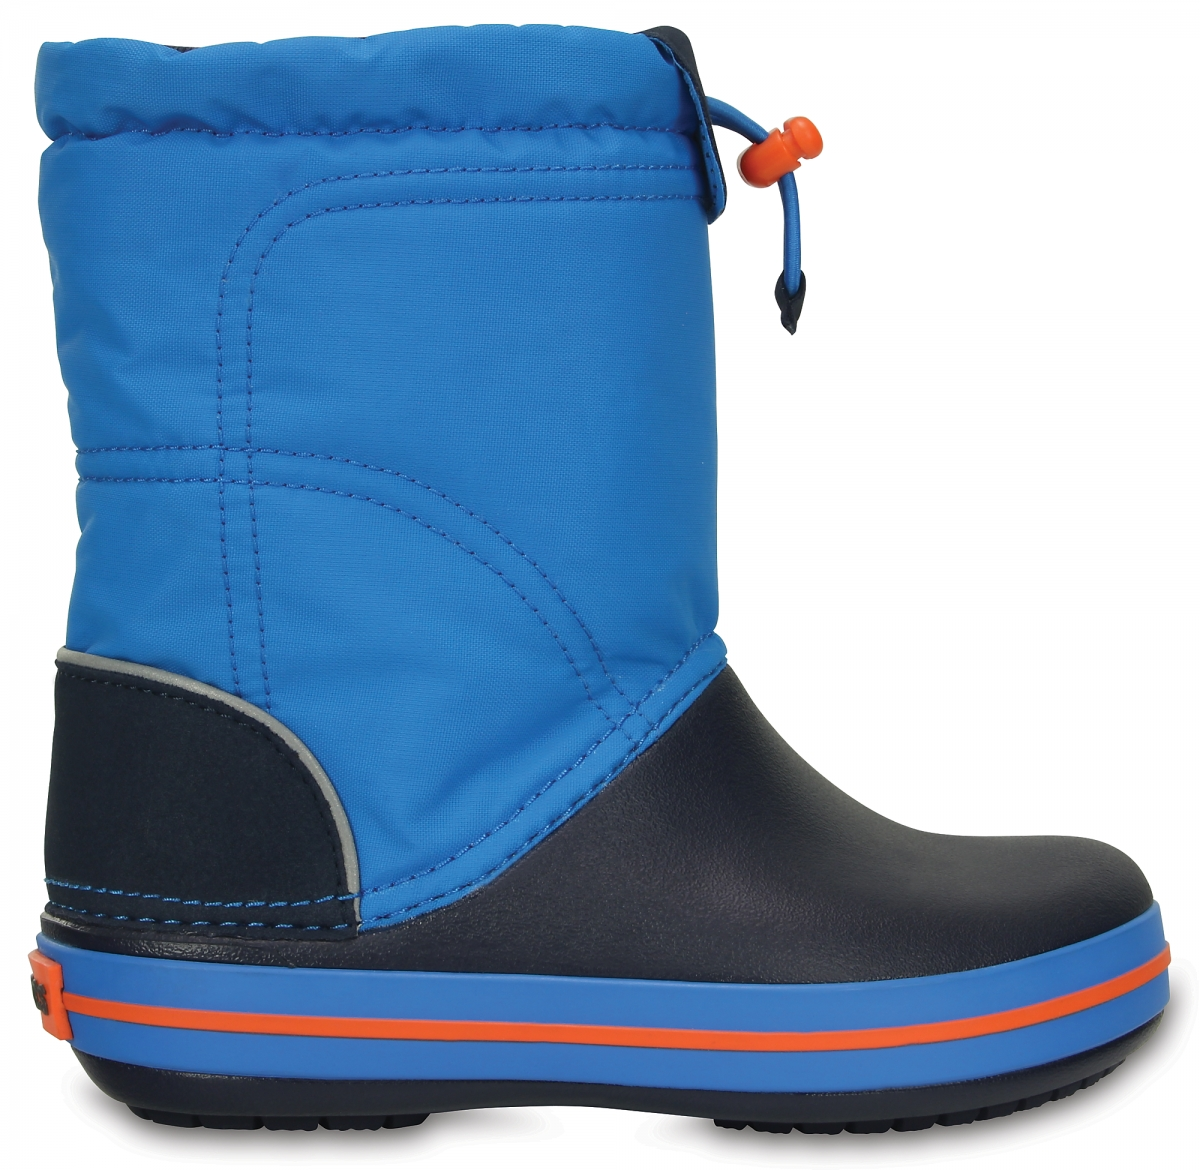 Crocs Crocband LodgePoint Boot Kids - Ocean/Navy, C11 (28-29)